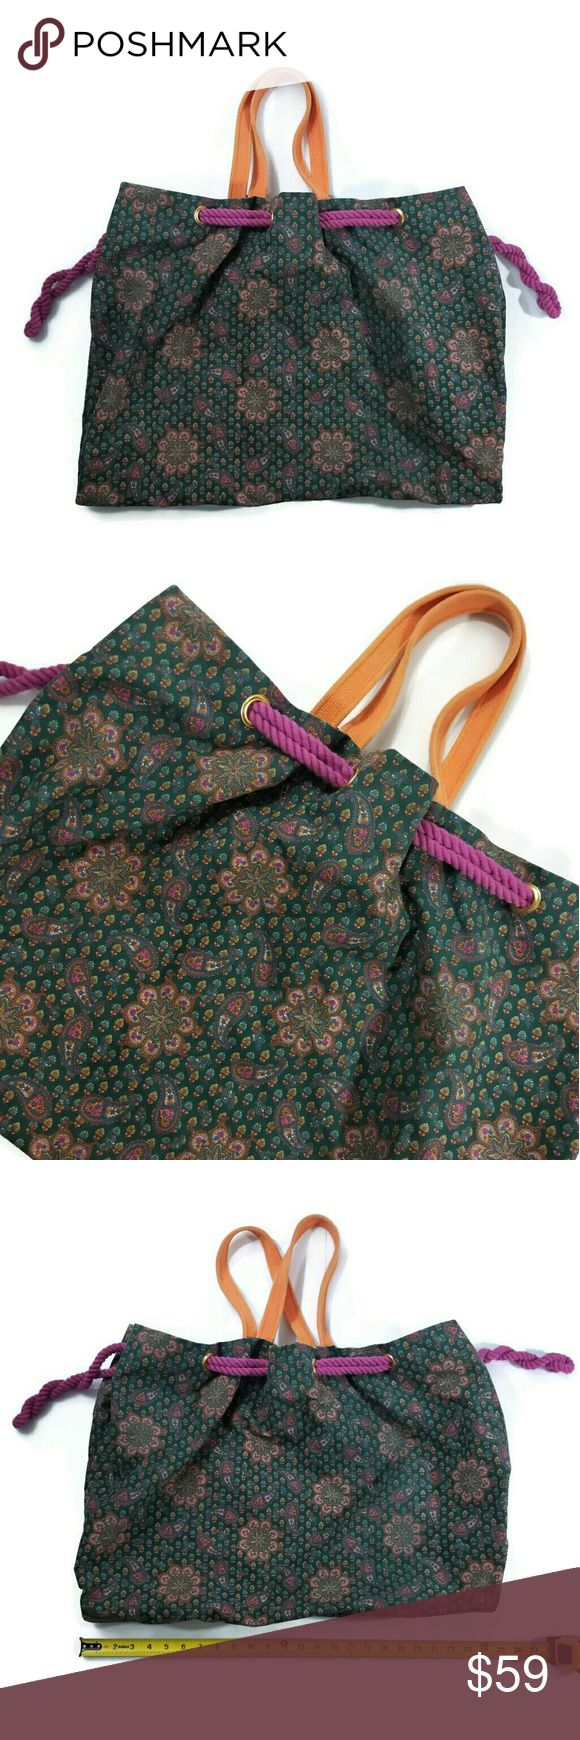 """Marc Jacobs large paisley tote bag Good condition. Paisley print on the fabric with orange straps. A thick purple rope is used as a draw string to pull the bag closed. Almost converts the bag from a large Tote to a large Hobo bag. The inside tag says """"Jacobs by Mark Jacobs for MARC by MARC JACOBS"""". The liner is black and has a zippered pocket. Approximate measurements 23""""x19"""". Marc By Marc Jacobs Bags"""